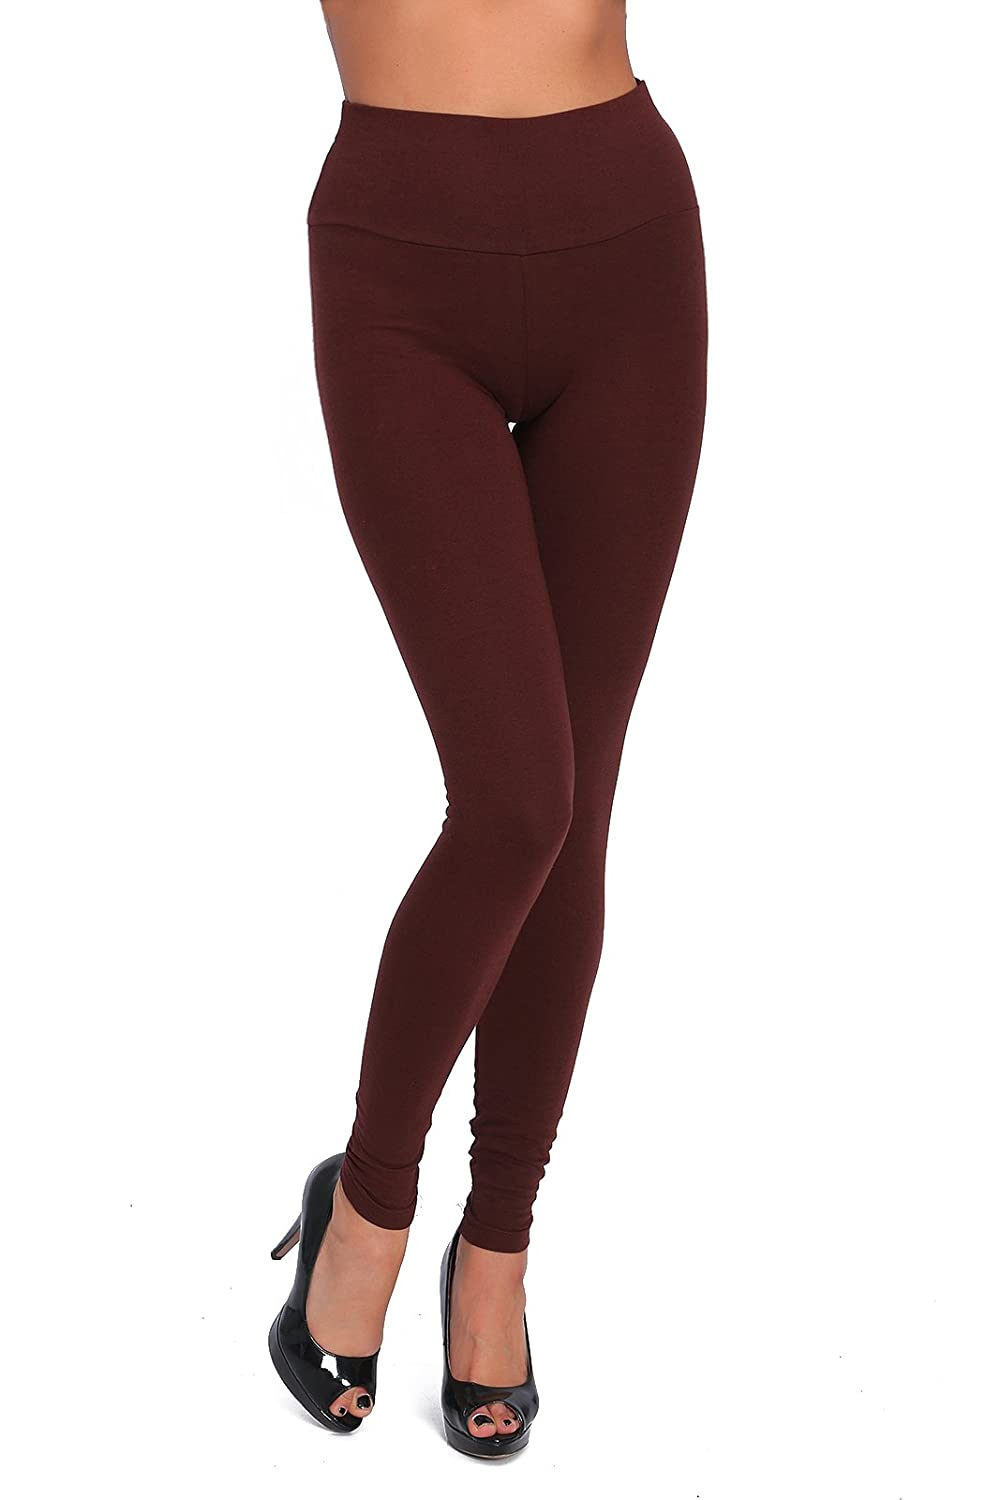 FUTURO FASHION High Waisted Leggings Full Length Plus Sizes LWP